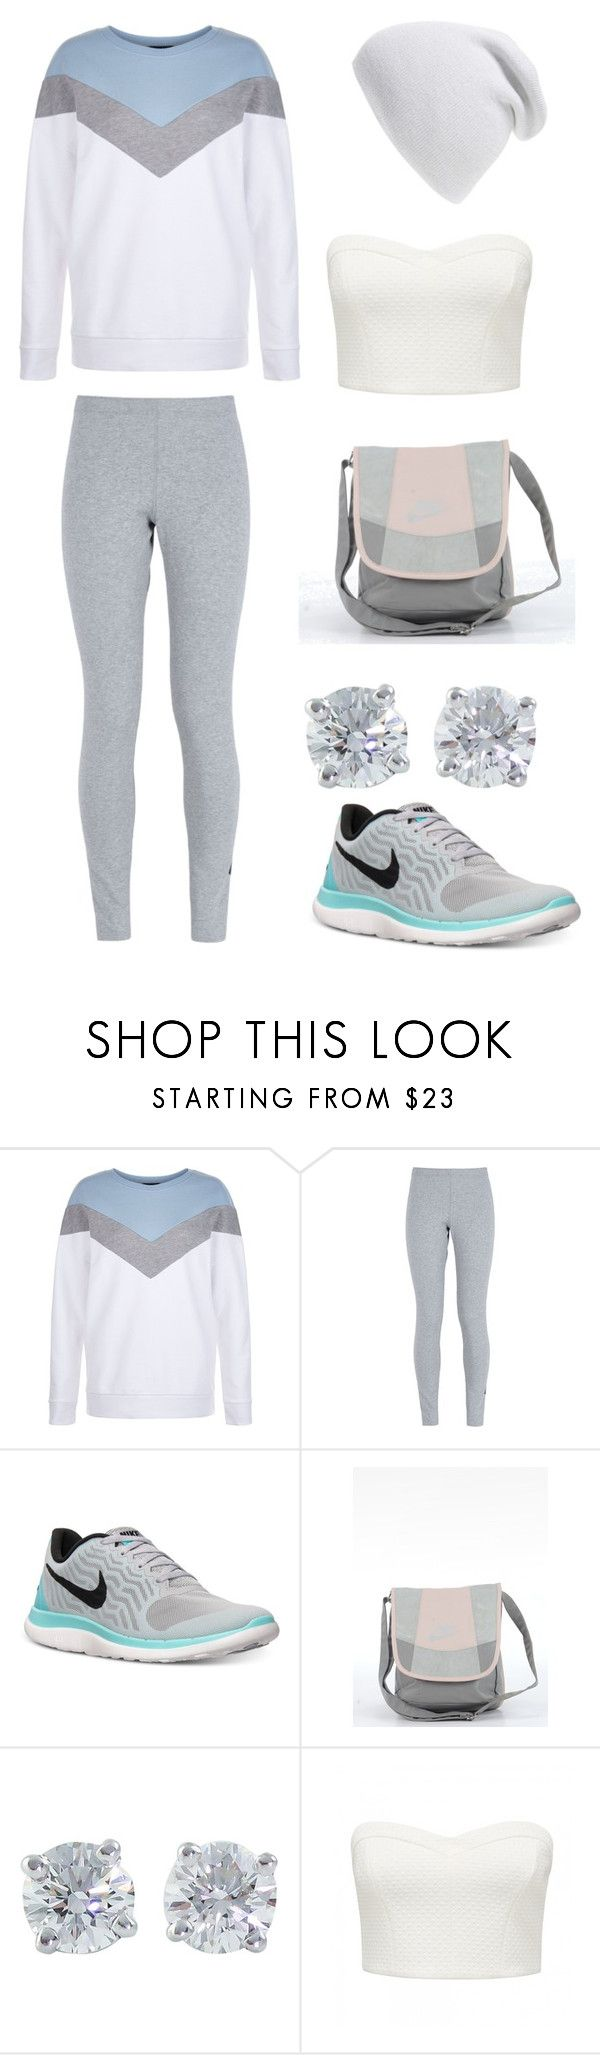 """Active Pastel"" by alphashe on Polyvore featuring New Look, NIKE, Tiffany & Co., Forever New and Phase 3"